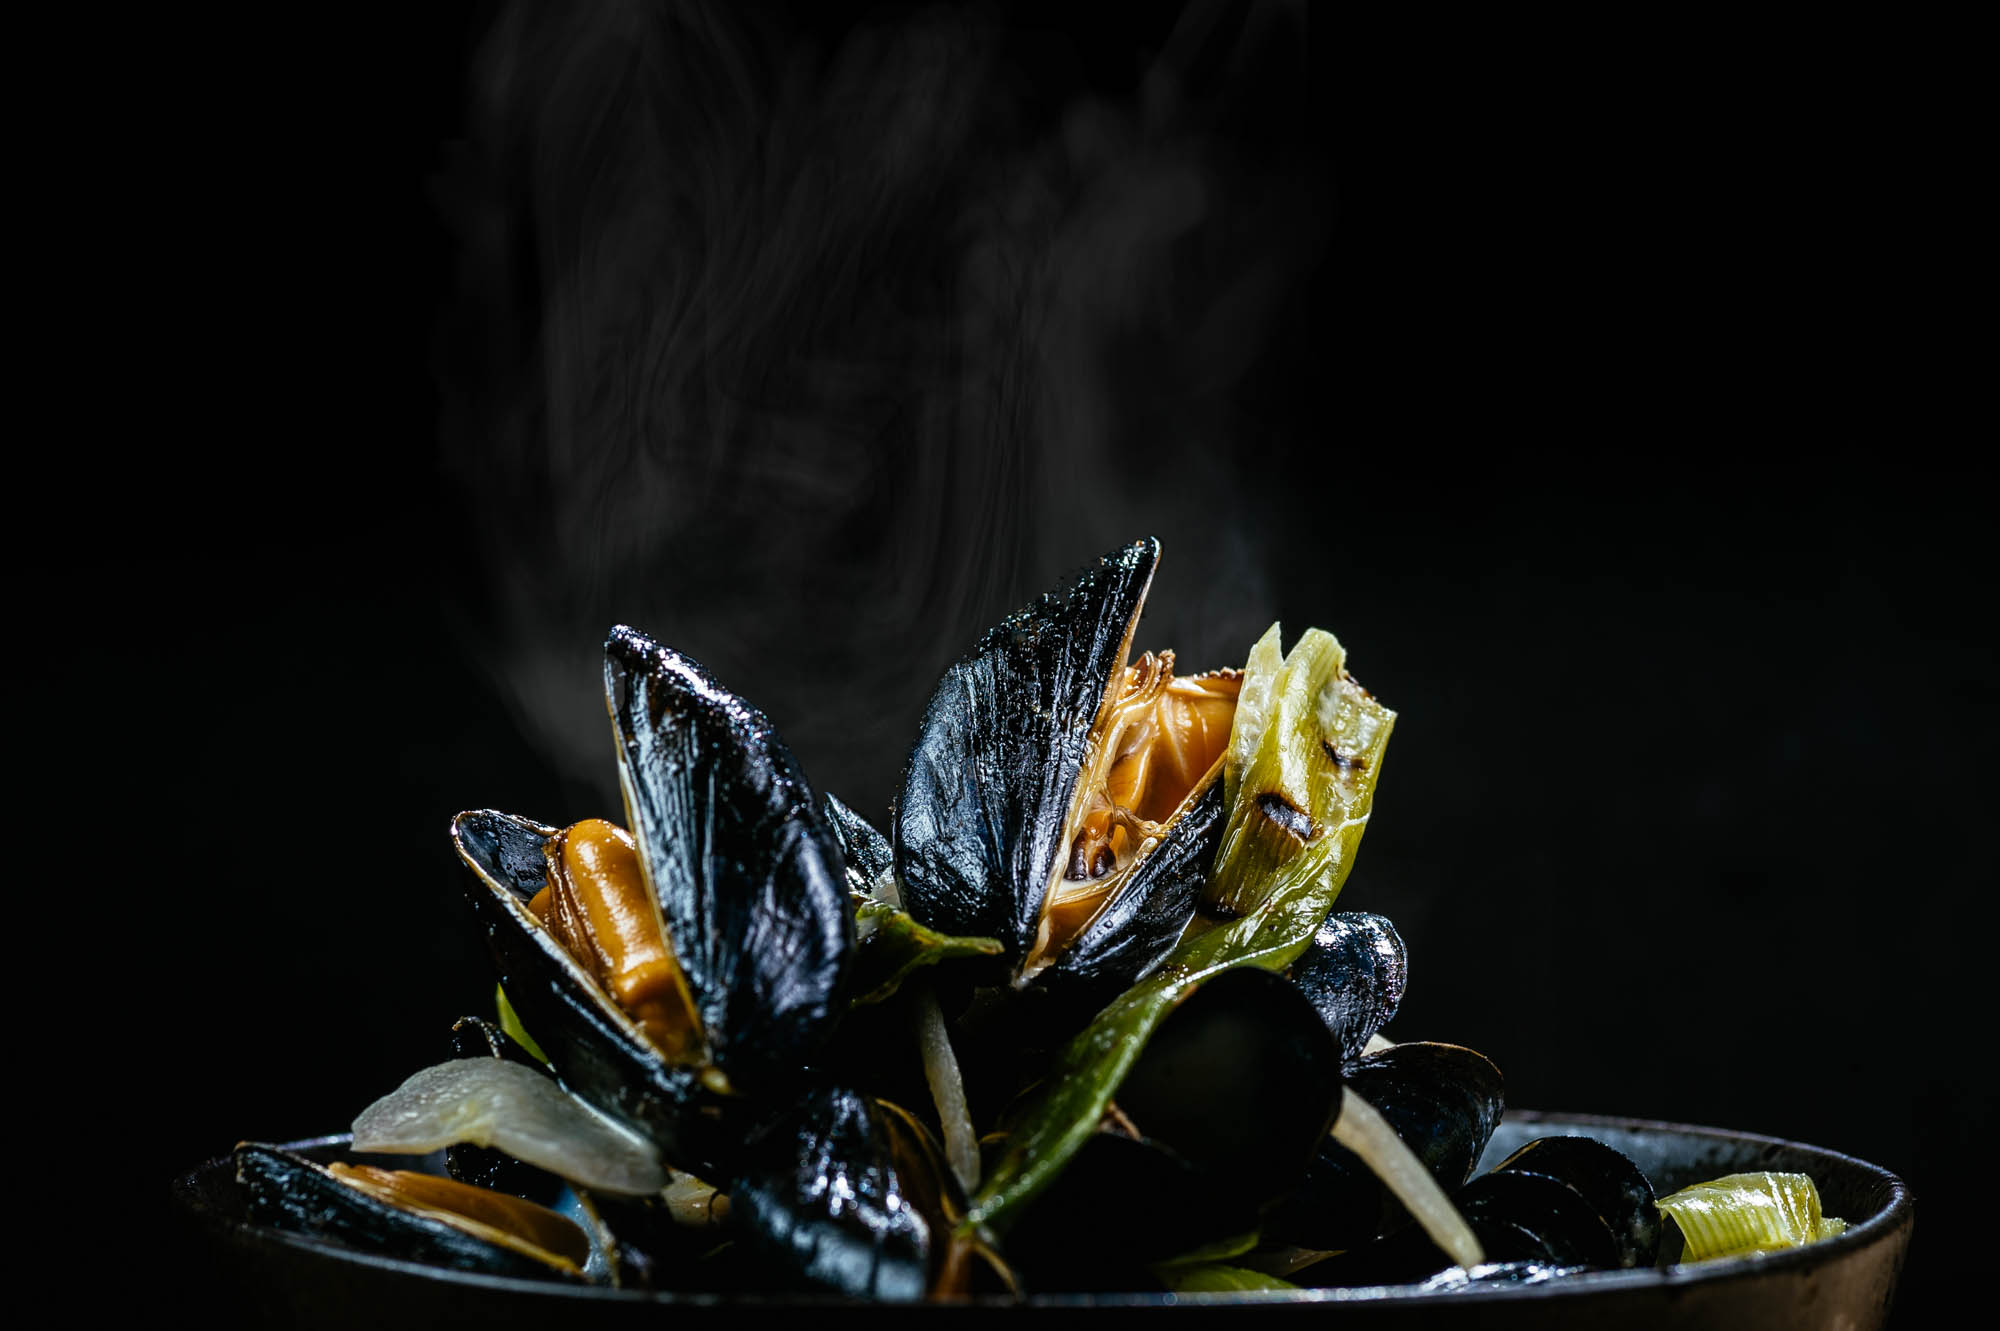 A Photo of steaming muscles